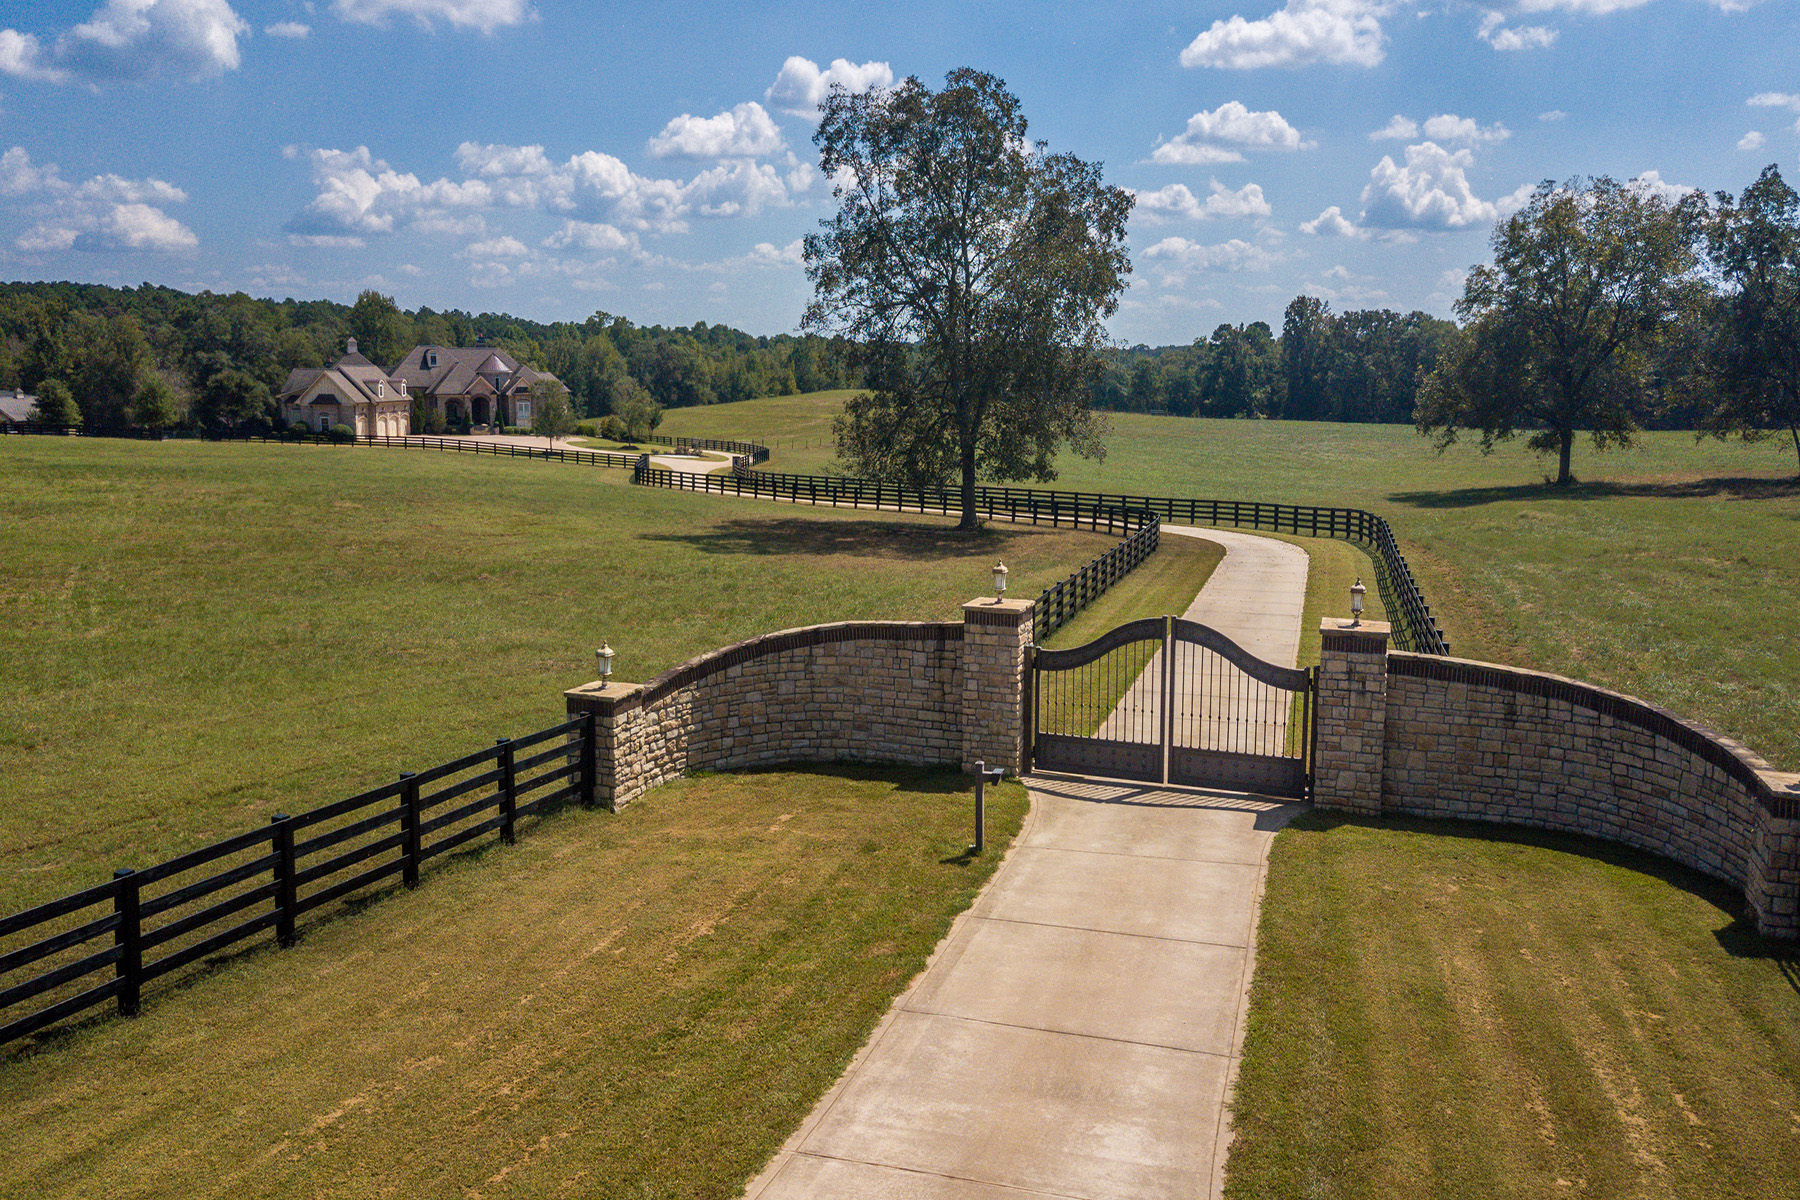 Single Family Homes for Active at One Of The Most Exquisite Equestrian Estates in the Middle of Georgia 450 Walter Moore Rd Jackson, Georgia 30233 United States